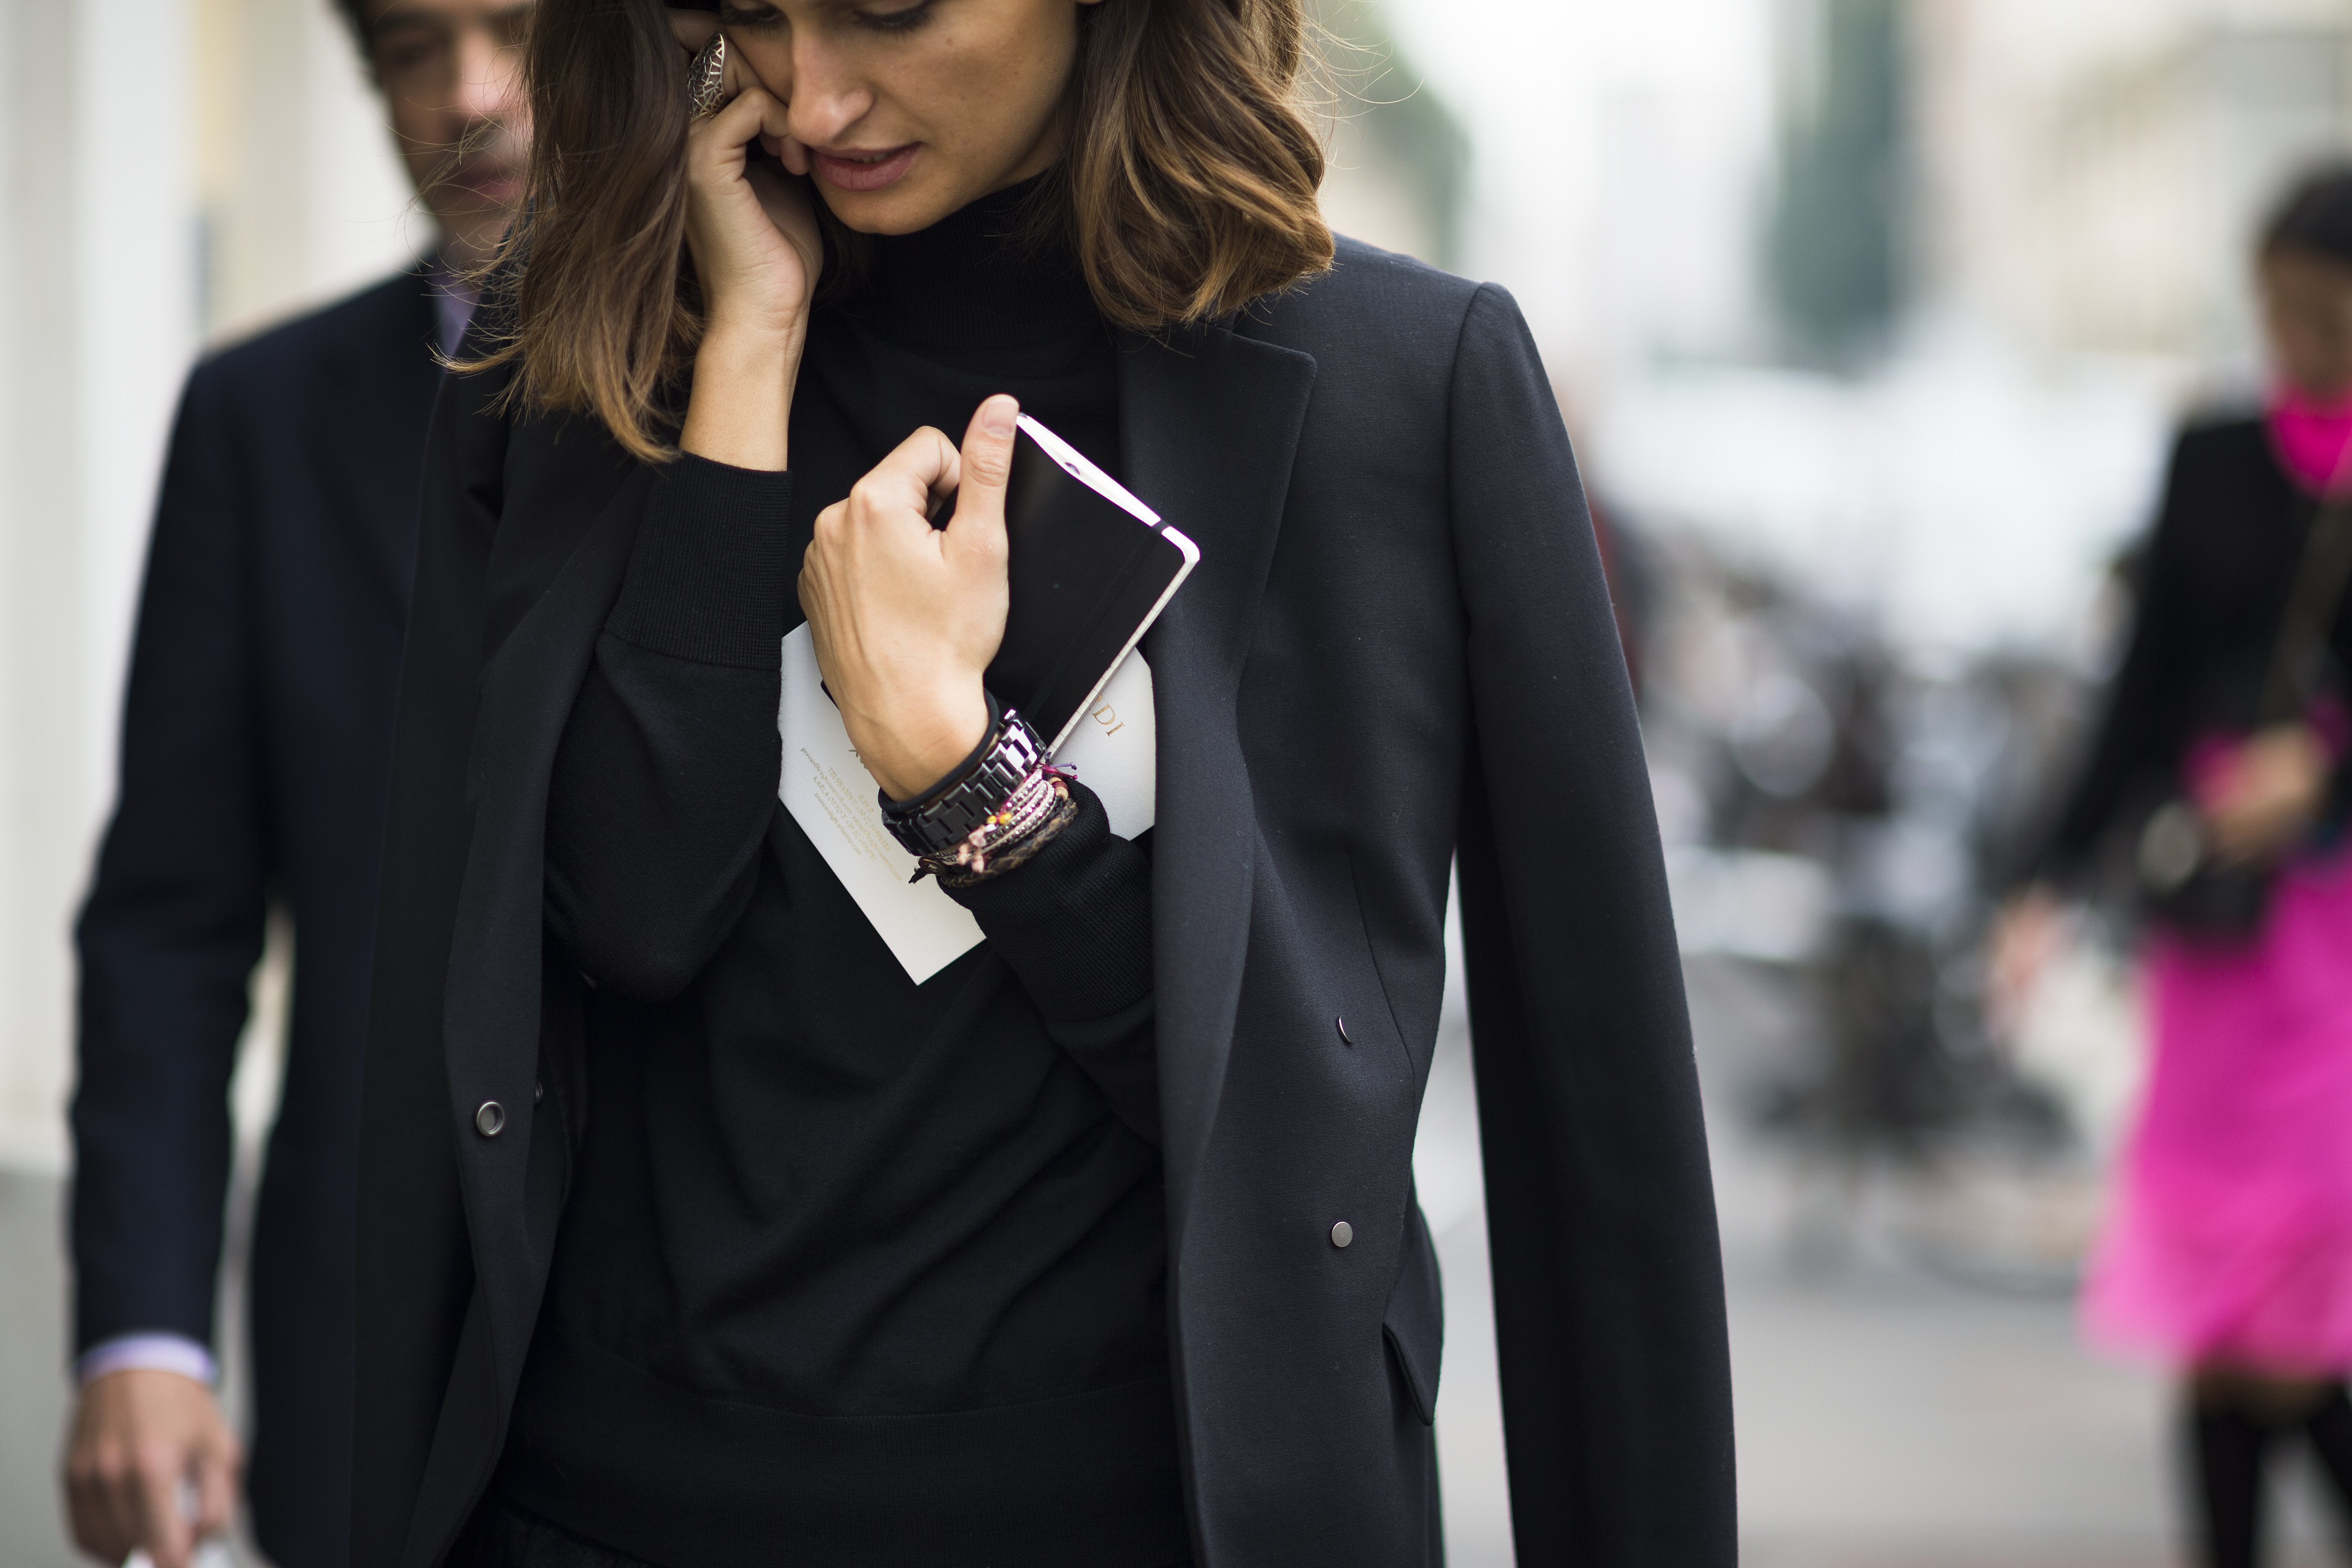 Photo: Isabelle Kountoure by street style photographer Adam Katz Sinding